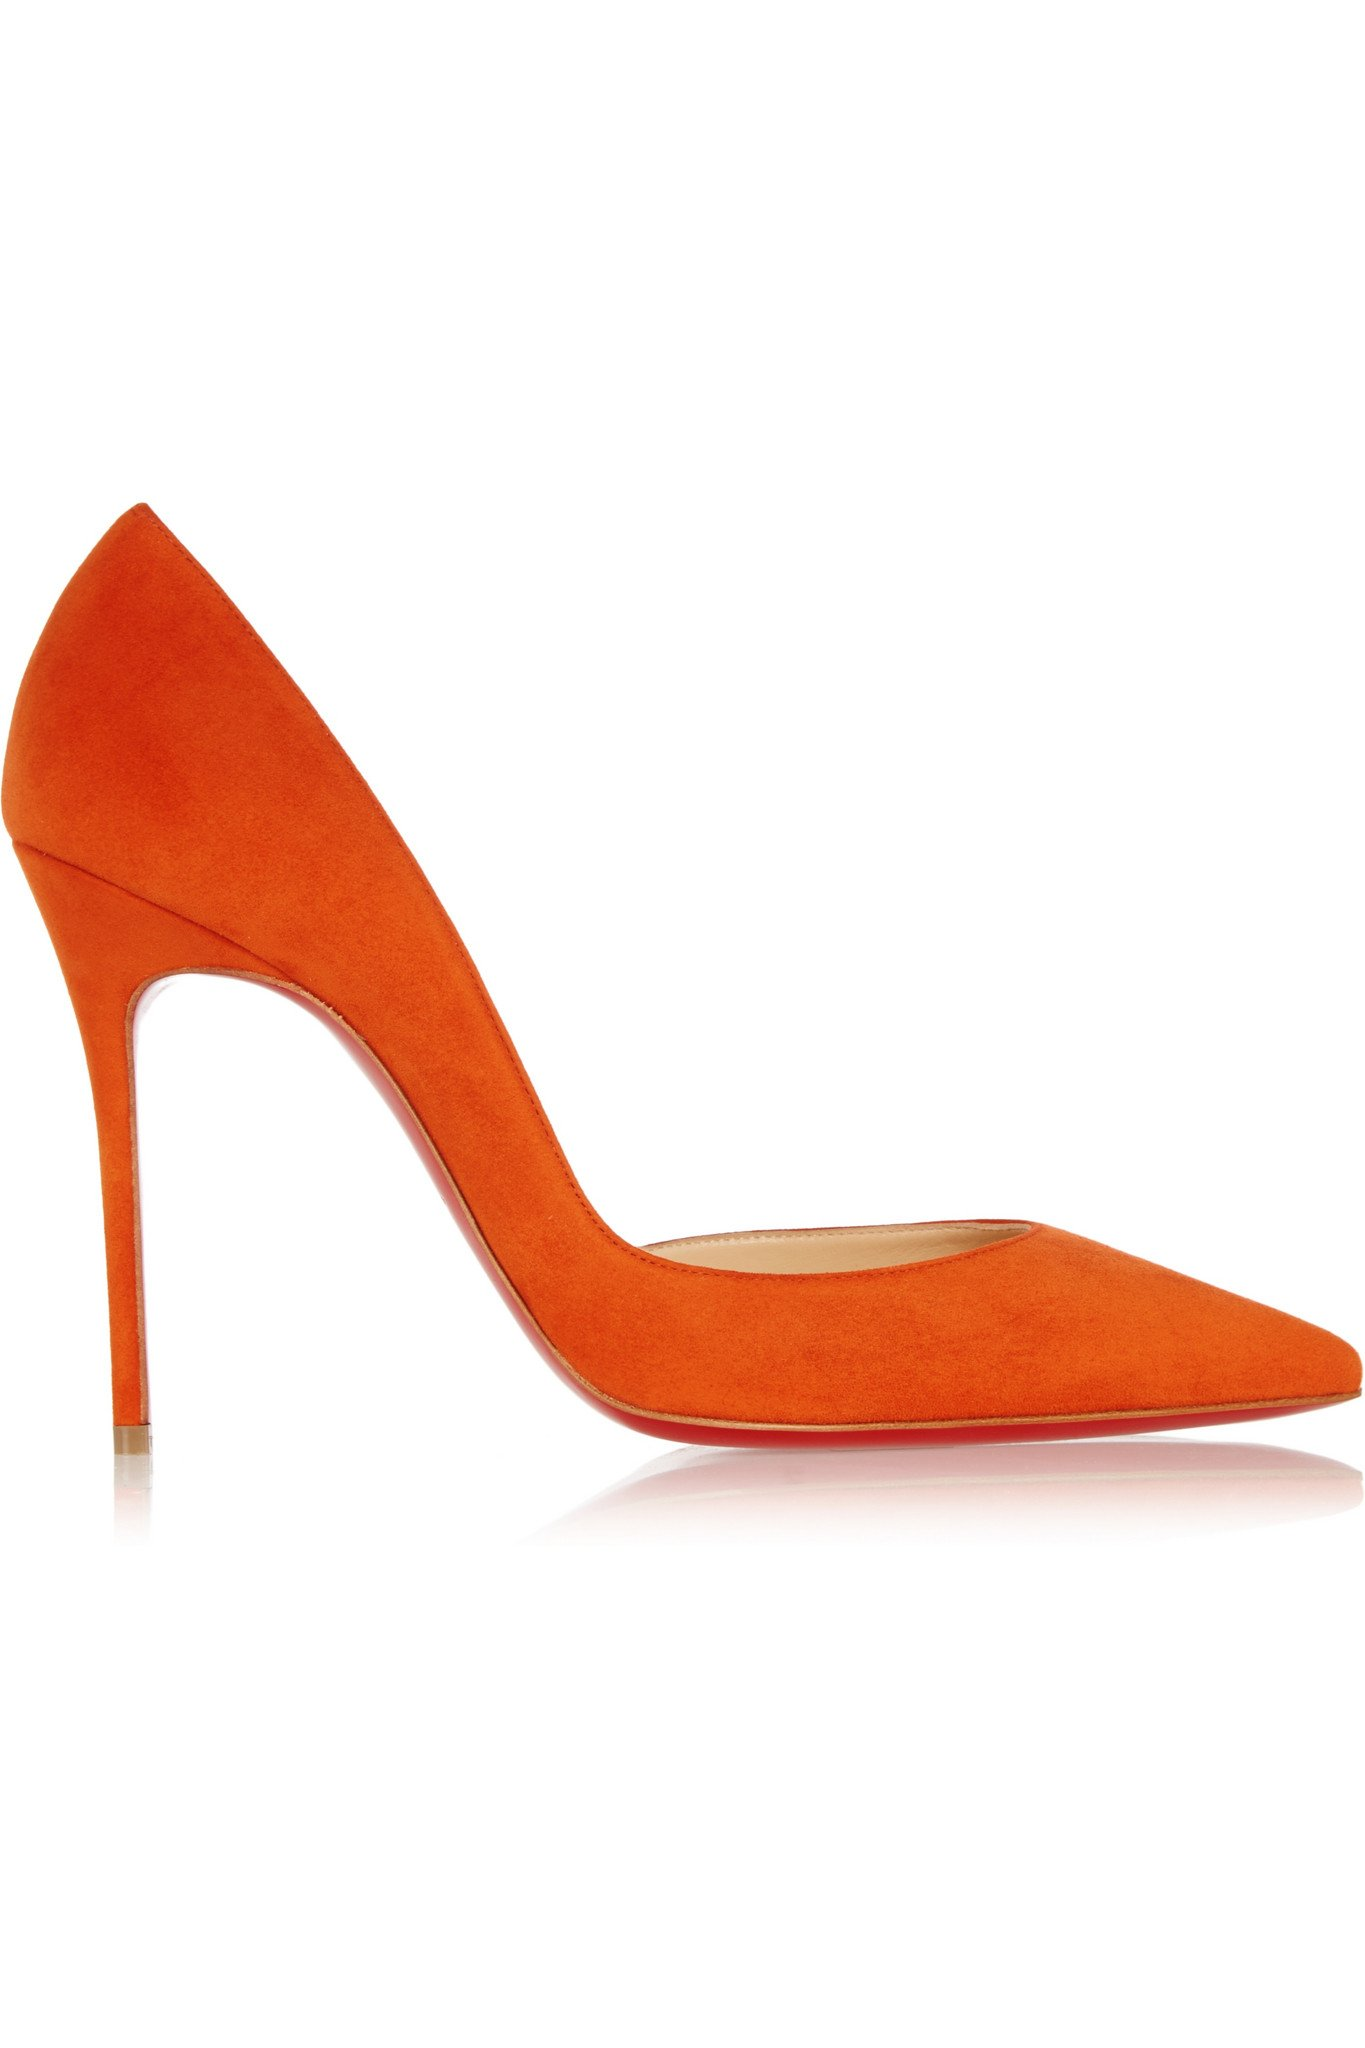 finest selection 9005e bb4ae Christian Louboutin Iriza 100 Suede Pumps in Orange - Lyst